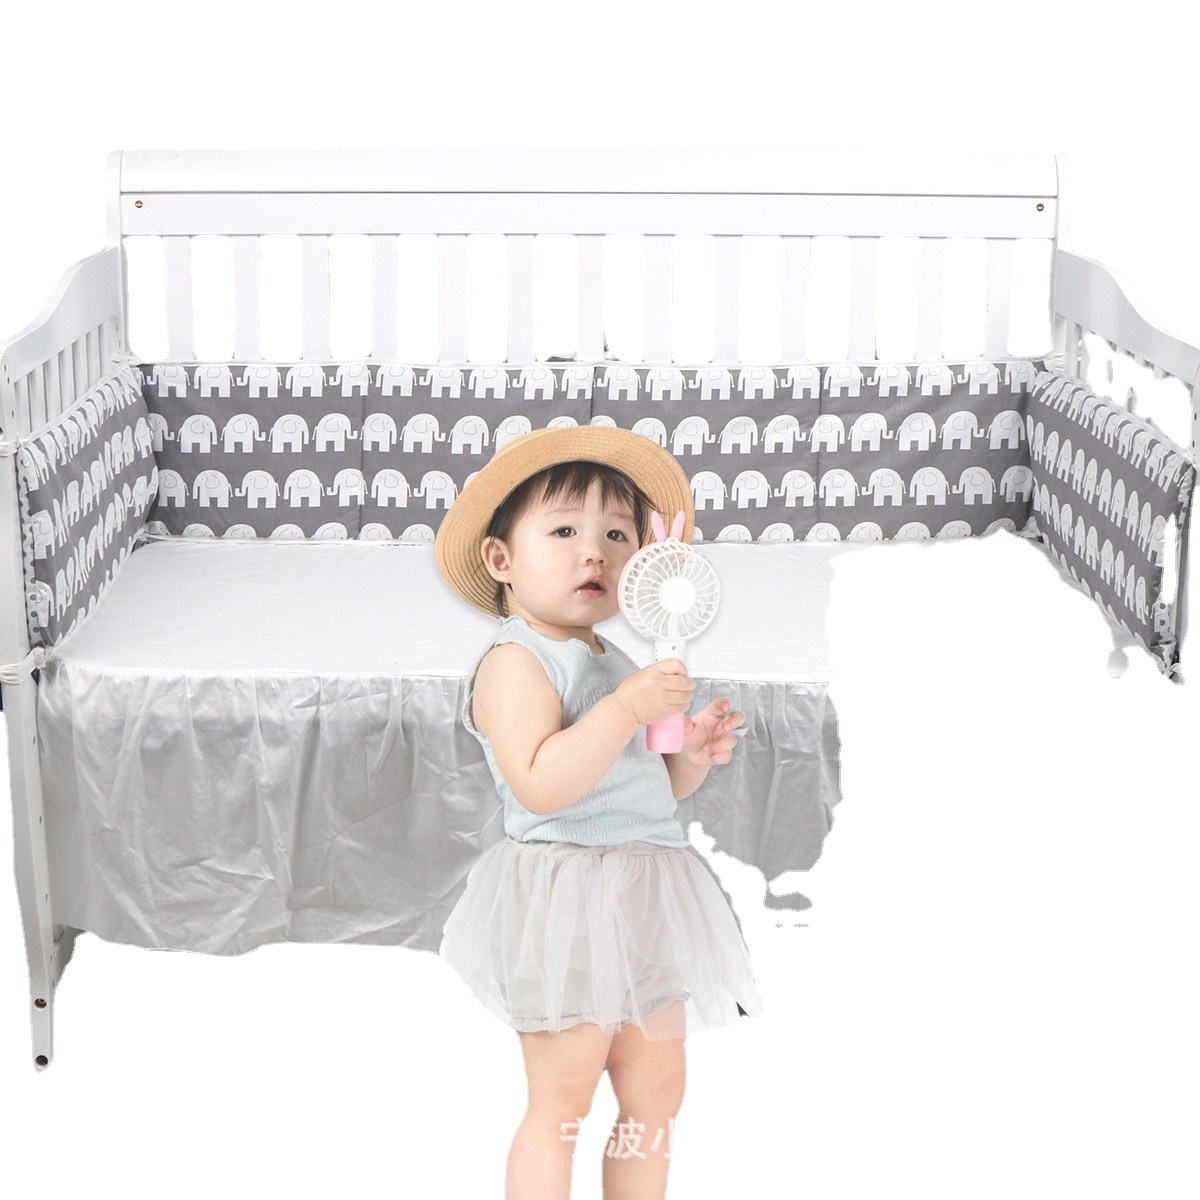 New baby crib anti-collision bed rail soft baby bed cushion variety of color patterns baby room decor baby bed bumper